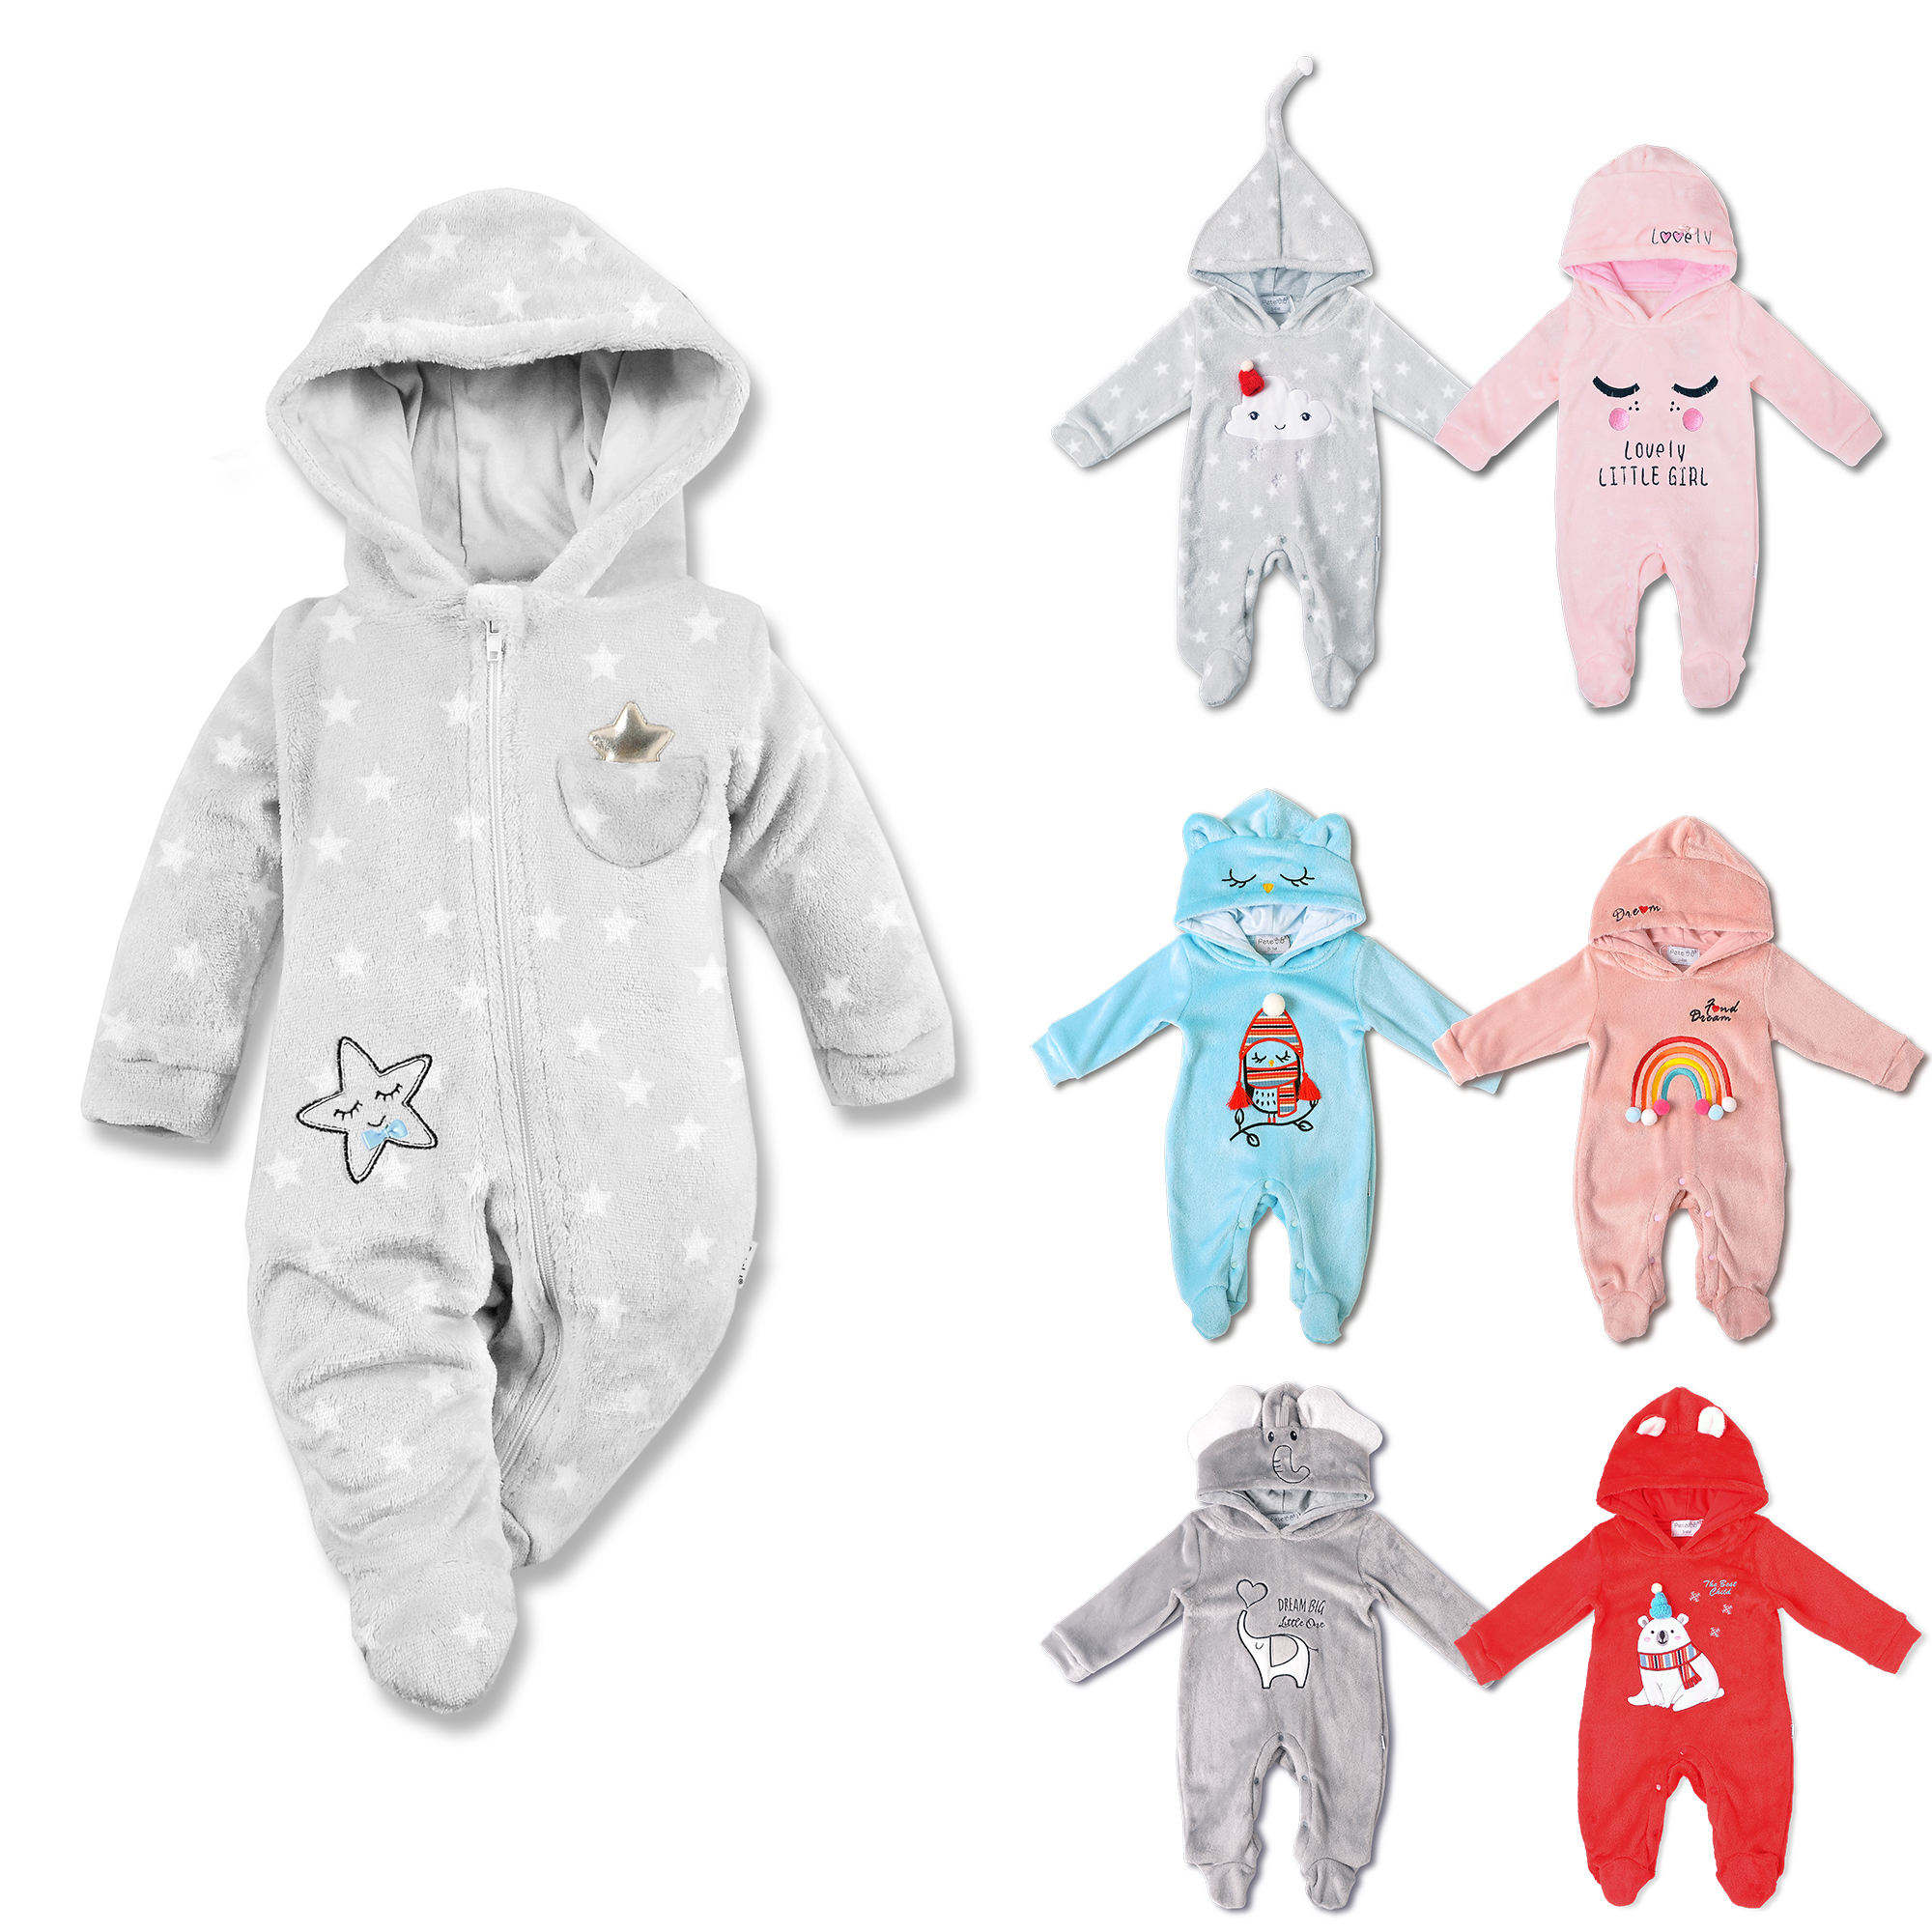 baby clothes in baby rompers unisex hoodies manufacturer costume baby clothes guangzhou petulu